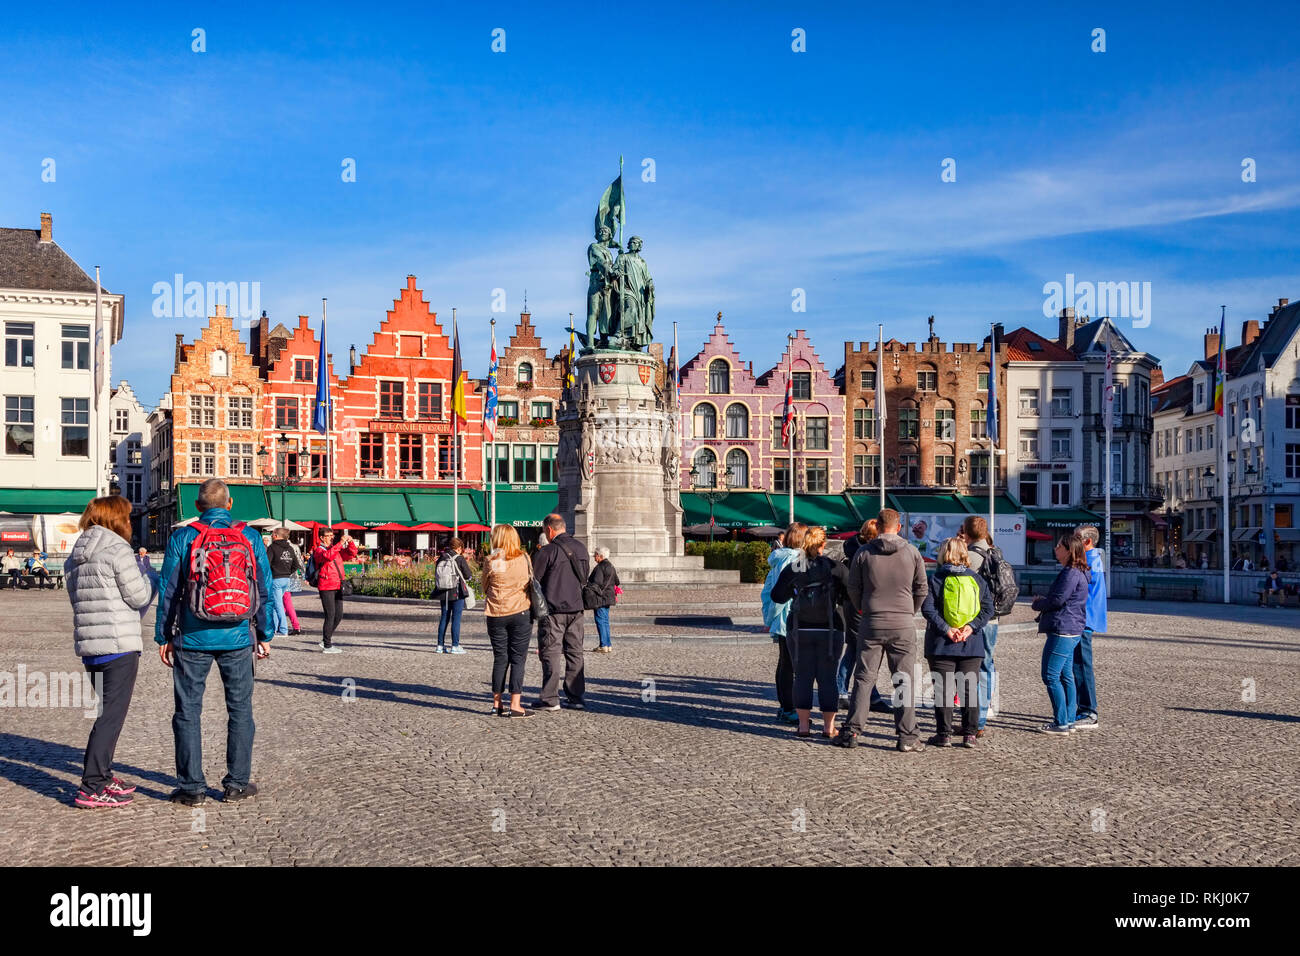 25 September 2018: Bruges, Belgium - Tourists in the Market Square on a sunny afternoon. Stock Photo